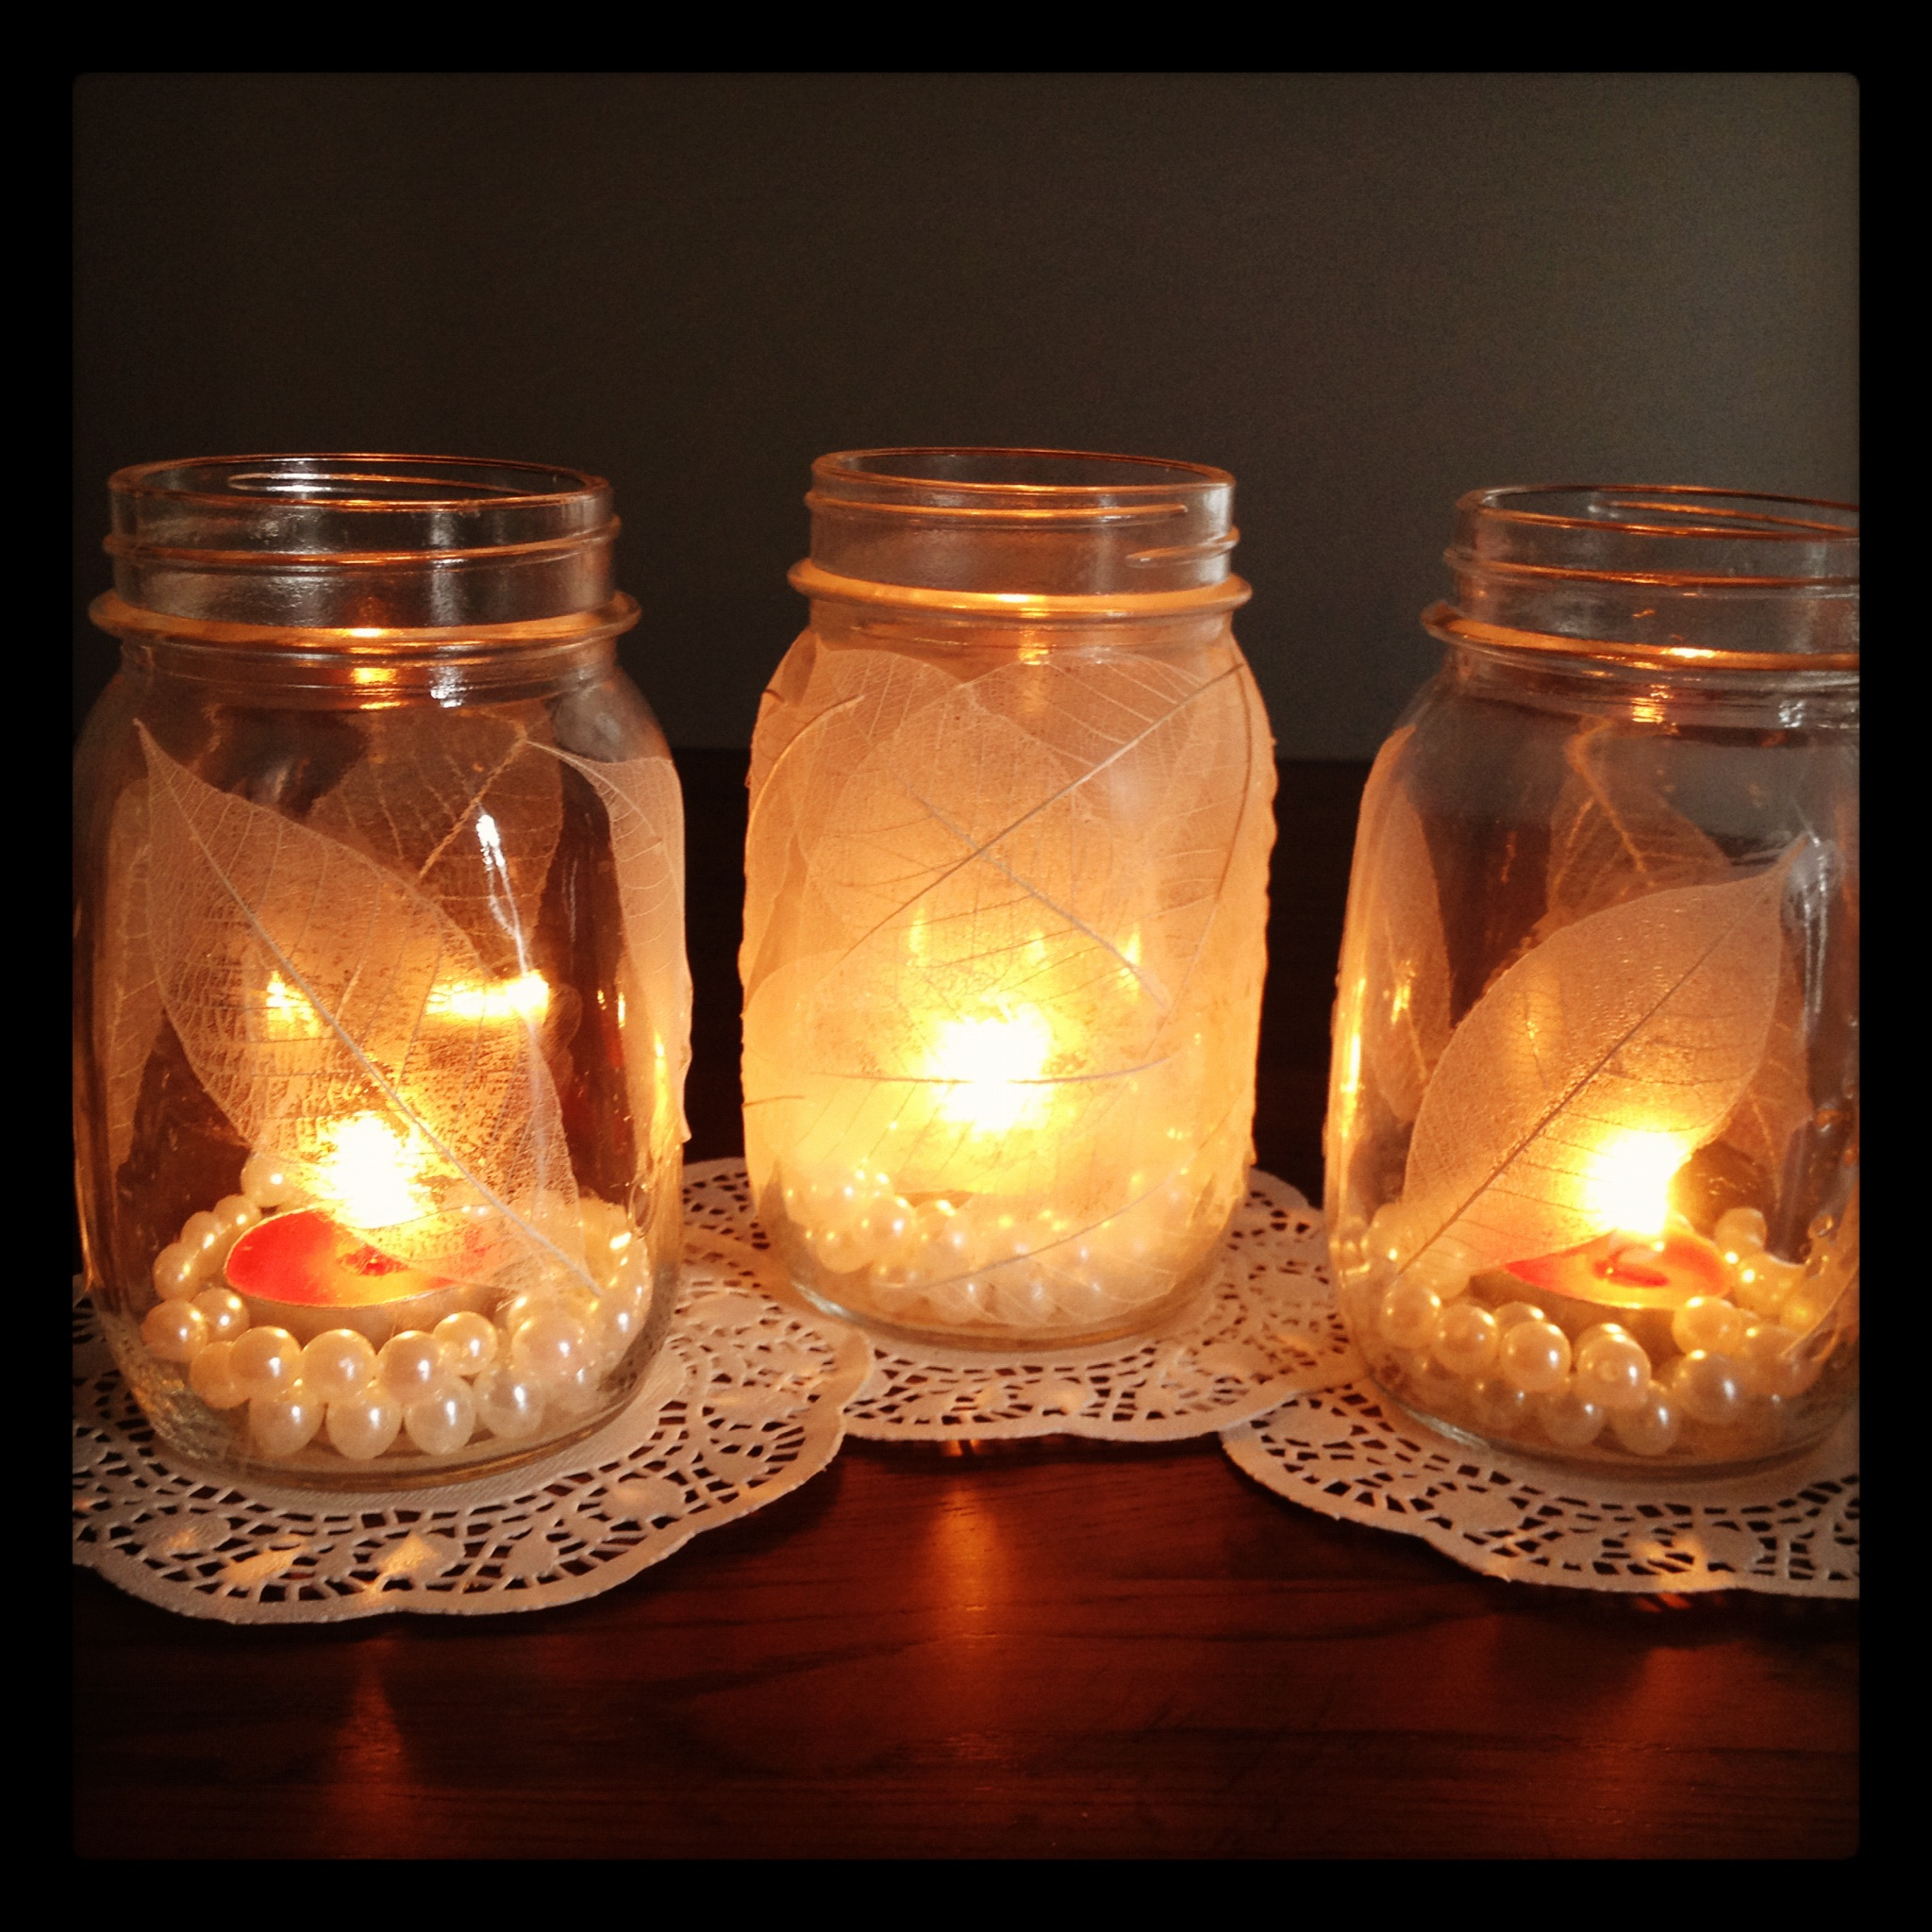 Diy Homemade Votive Candle Holders My Subjunctive